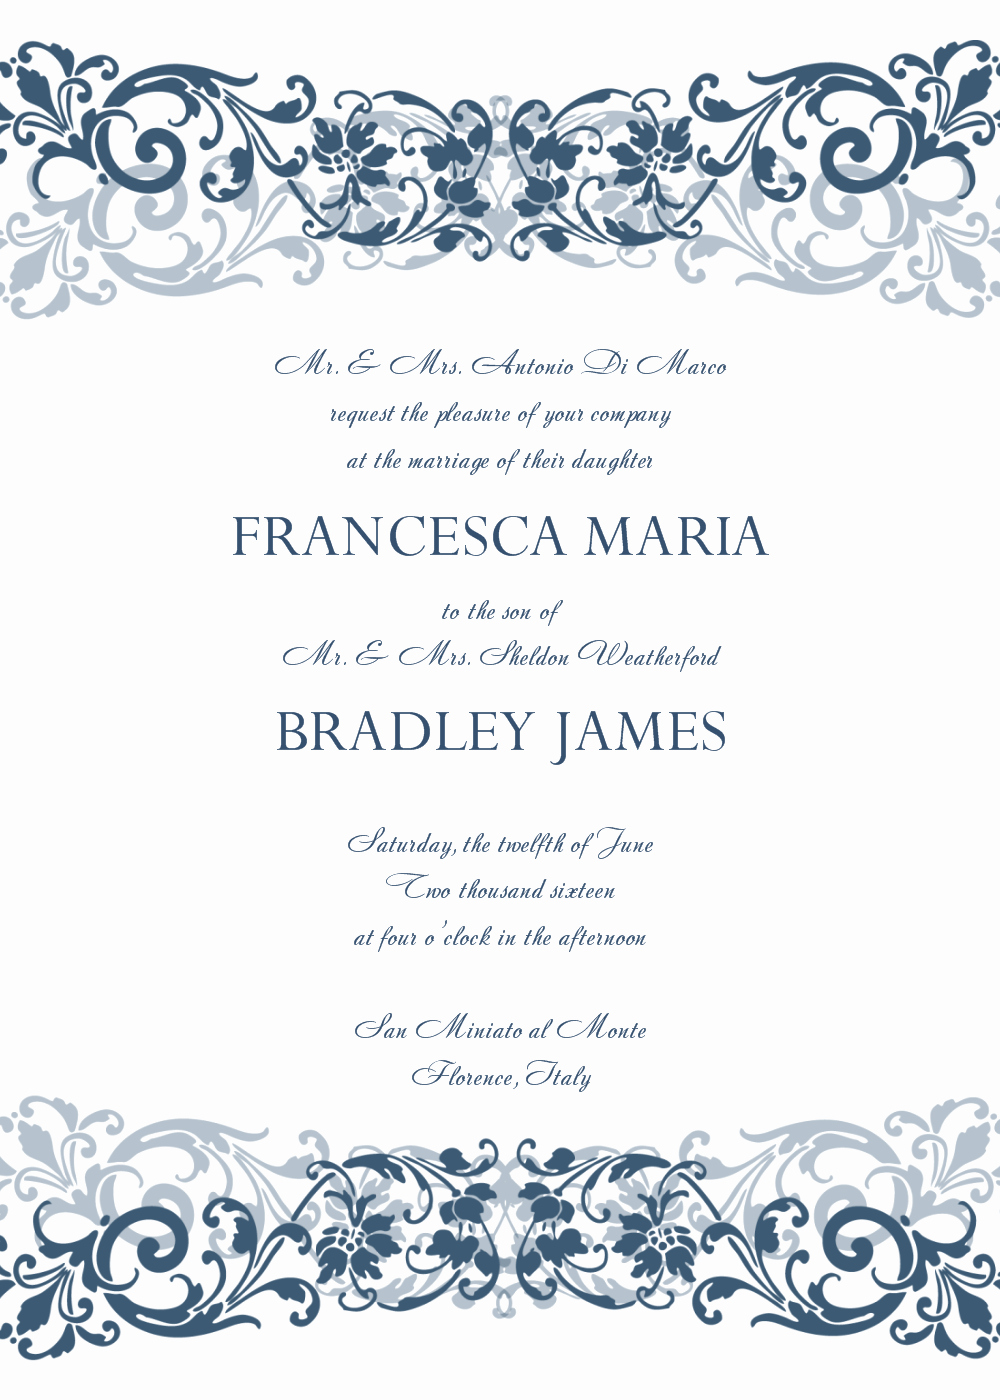 Free Downloadable Wedding Invitation Templates Elegant 8 Free Wedding Invitation Templates Excel Pdf formats